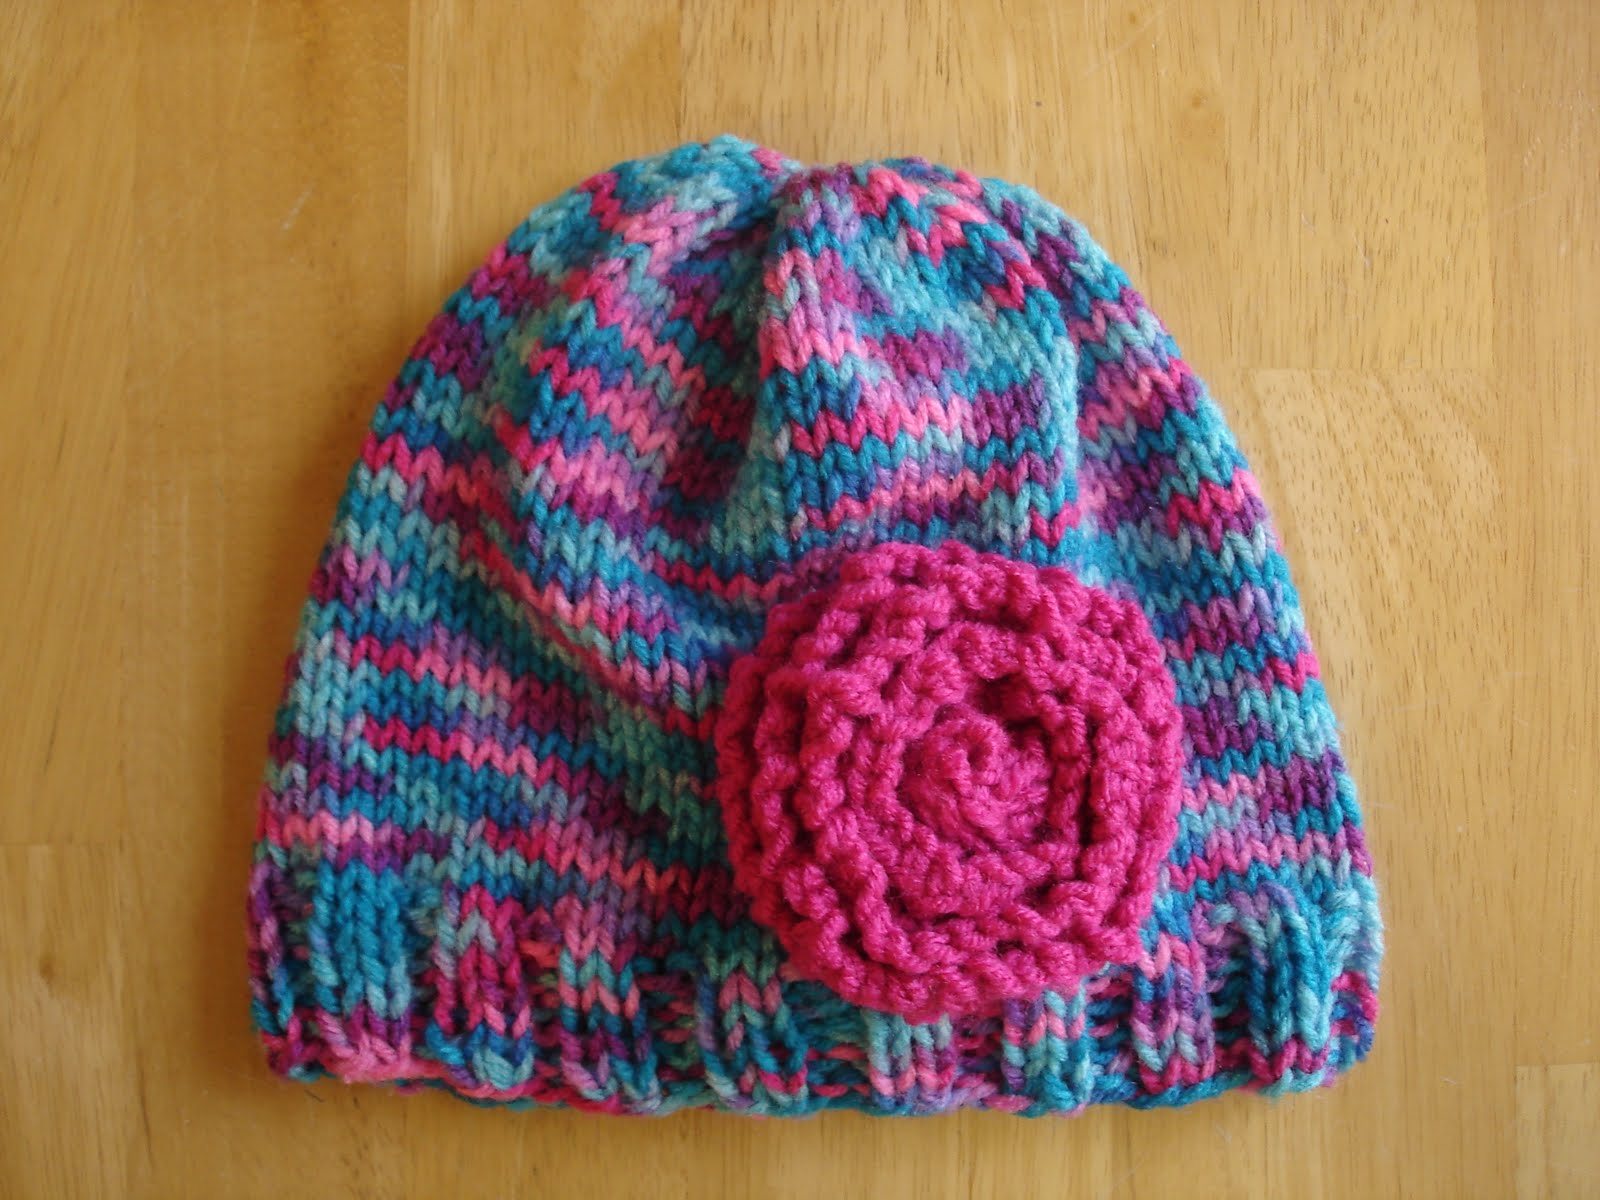 Free Knit Patterns For Toddlers : Fiber Flux: Free Knitting Pattern! Cotton Candy Hat